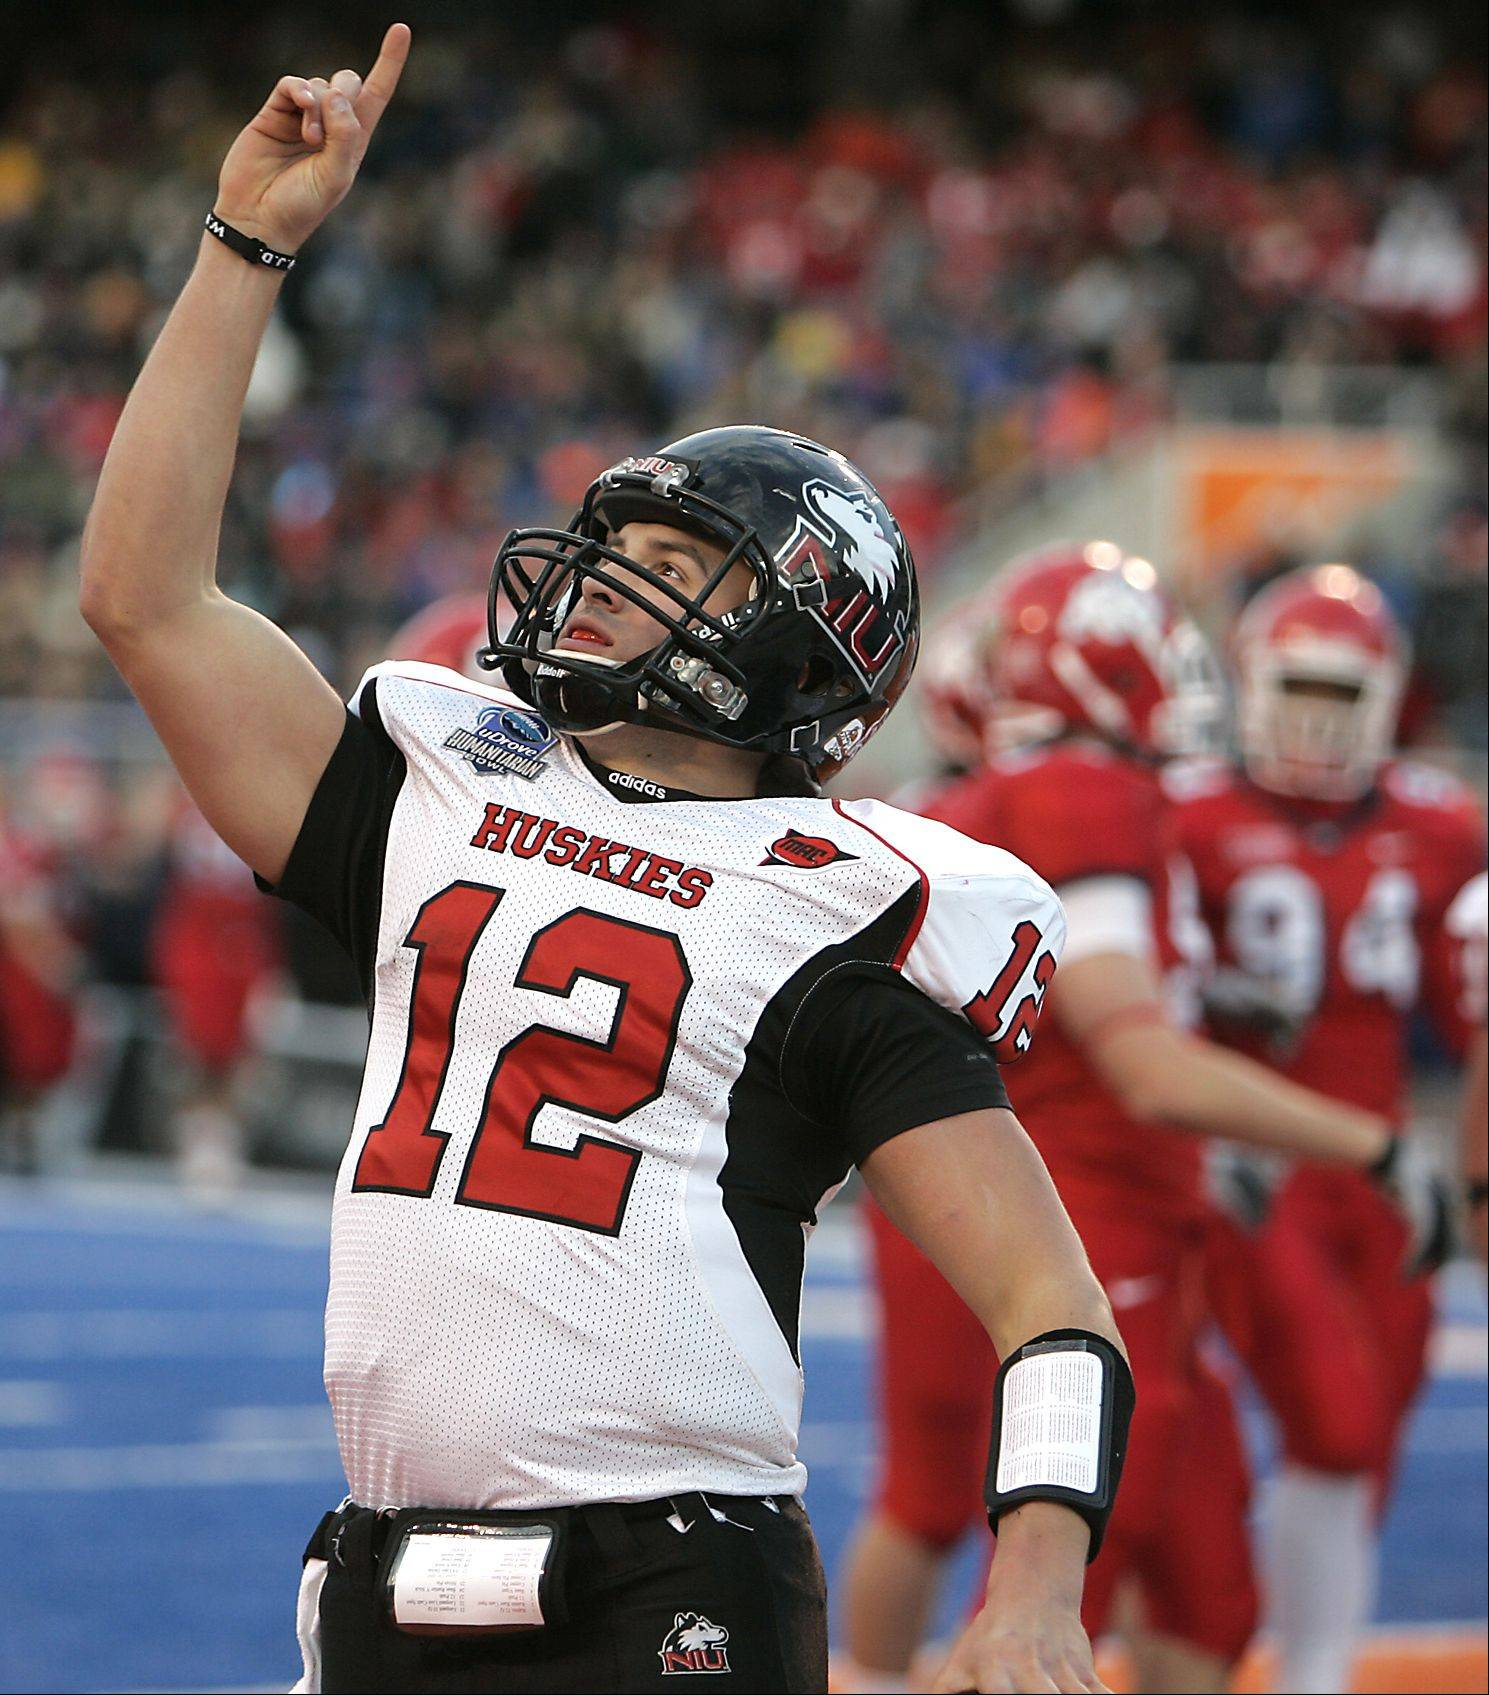 Northern Illinois quarterback Chandler Harnish returns to lead the Huskies in their home opener Saturday against Army.